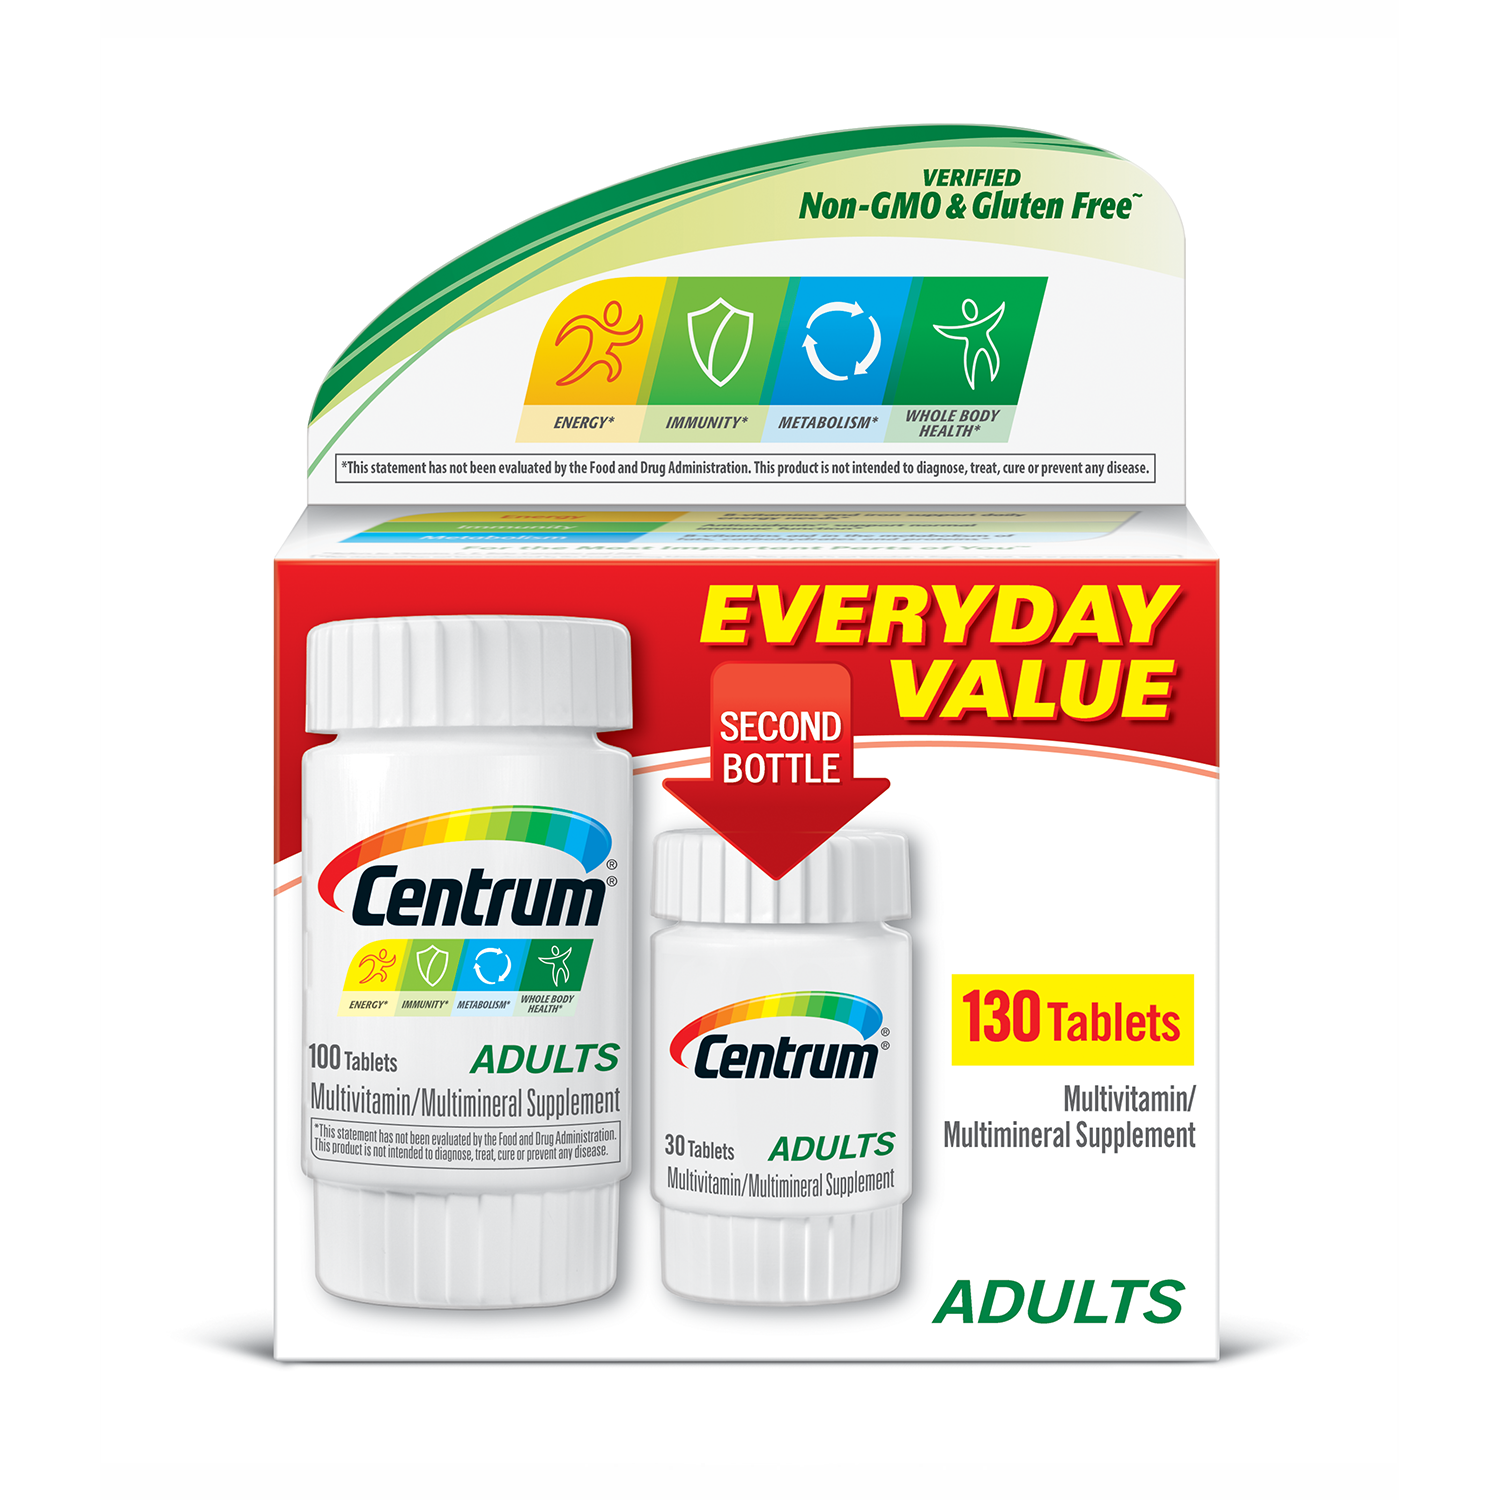 Centrum Adult (130 Count) Complete Multivitamin / Multimineral Supplement Tablet, Vitamin D3, B Vitamins, Iron, Antioxidants